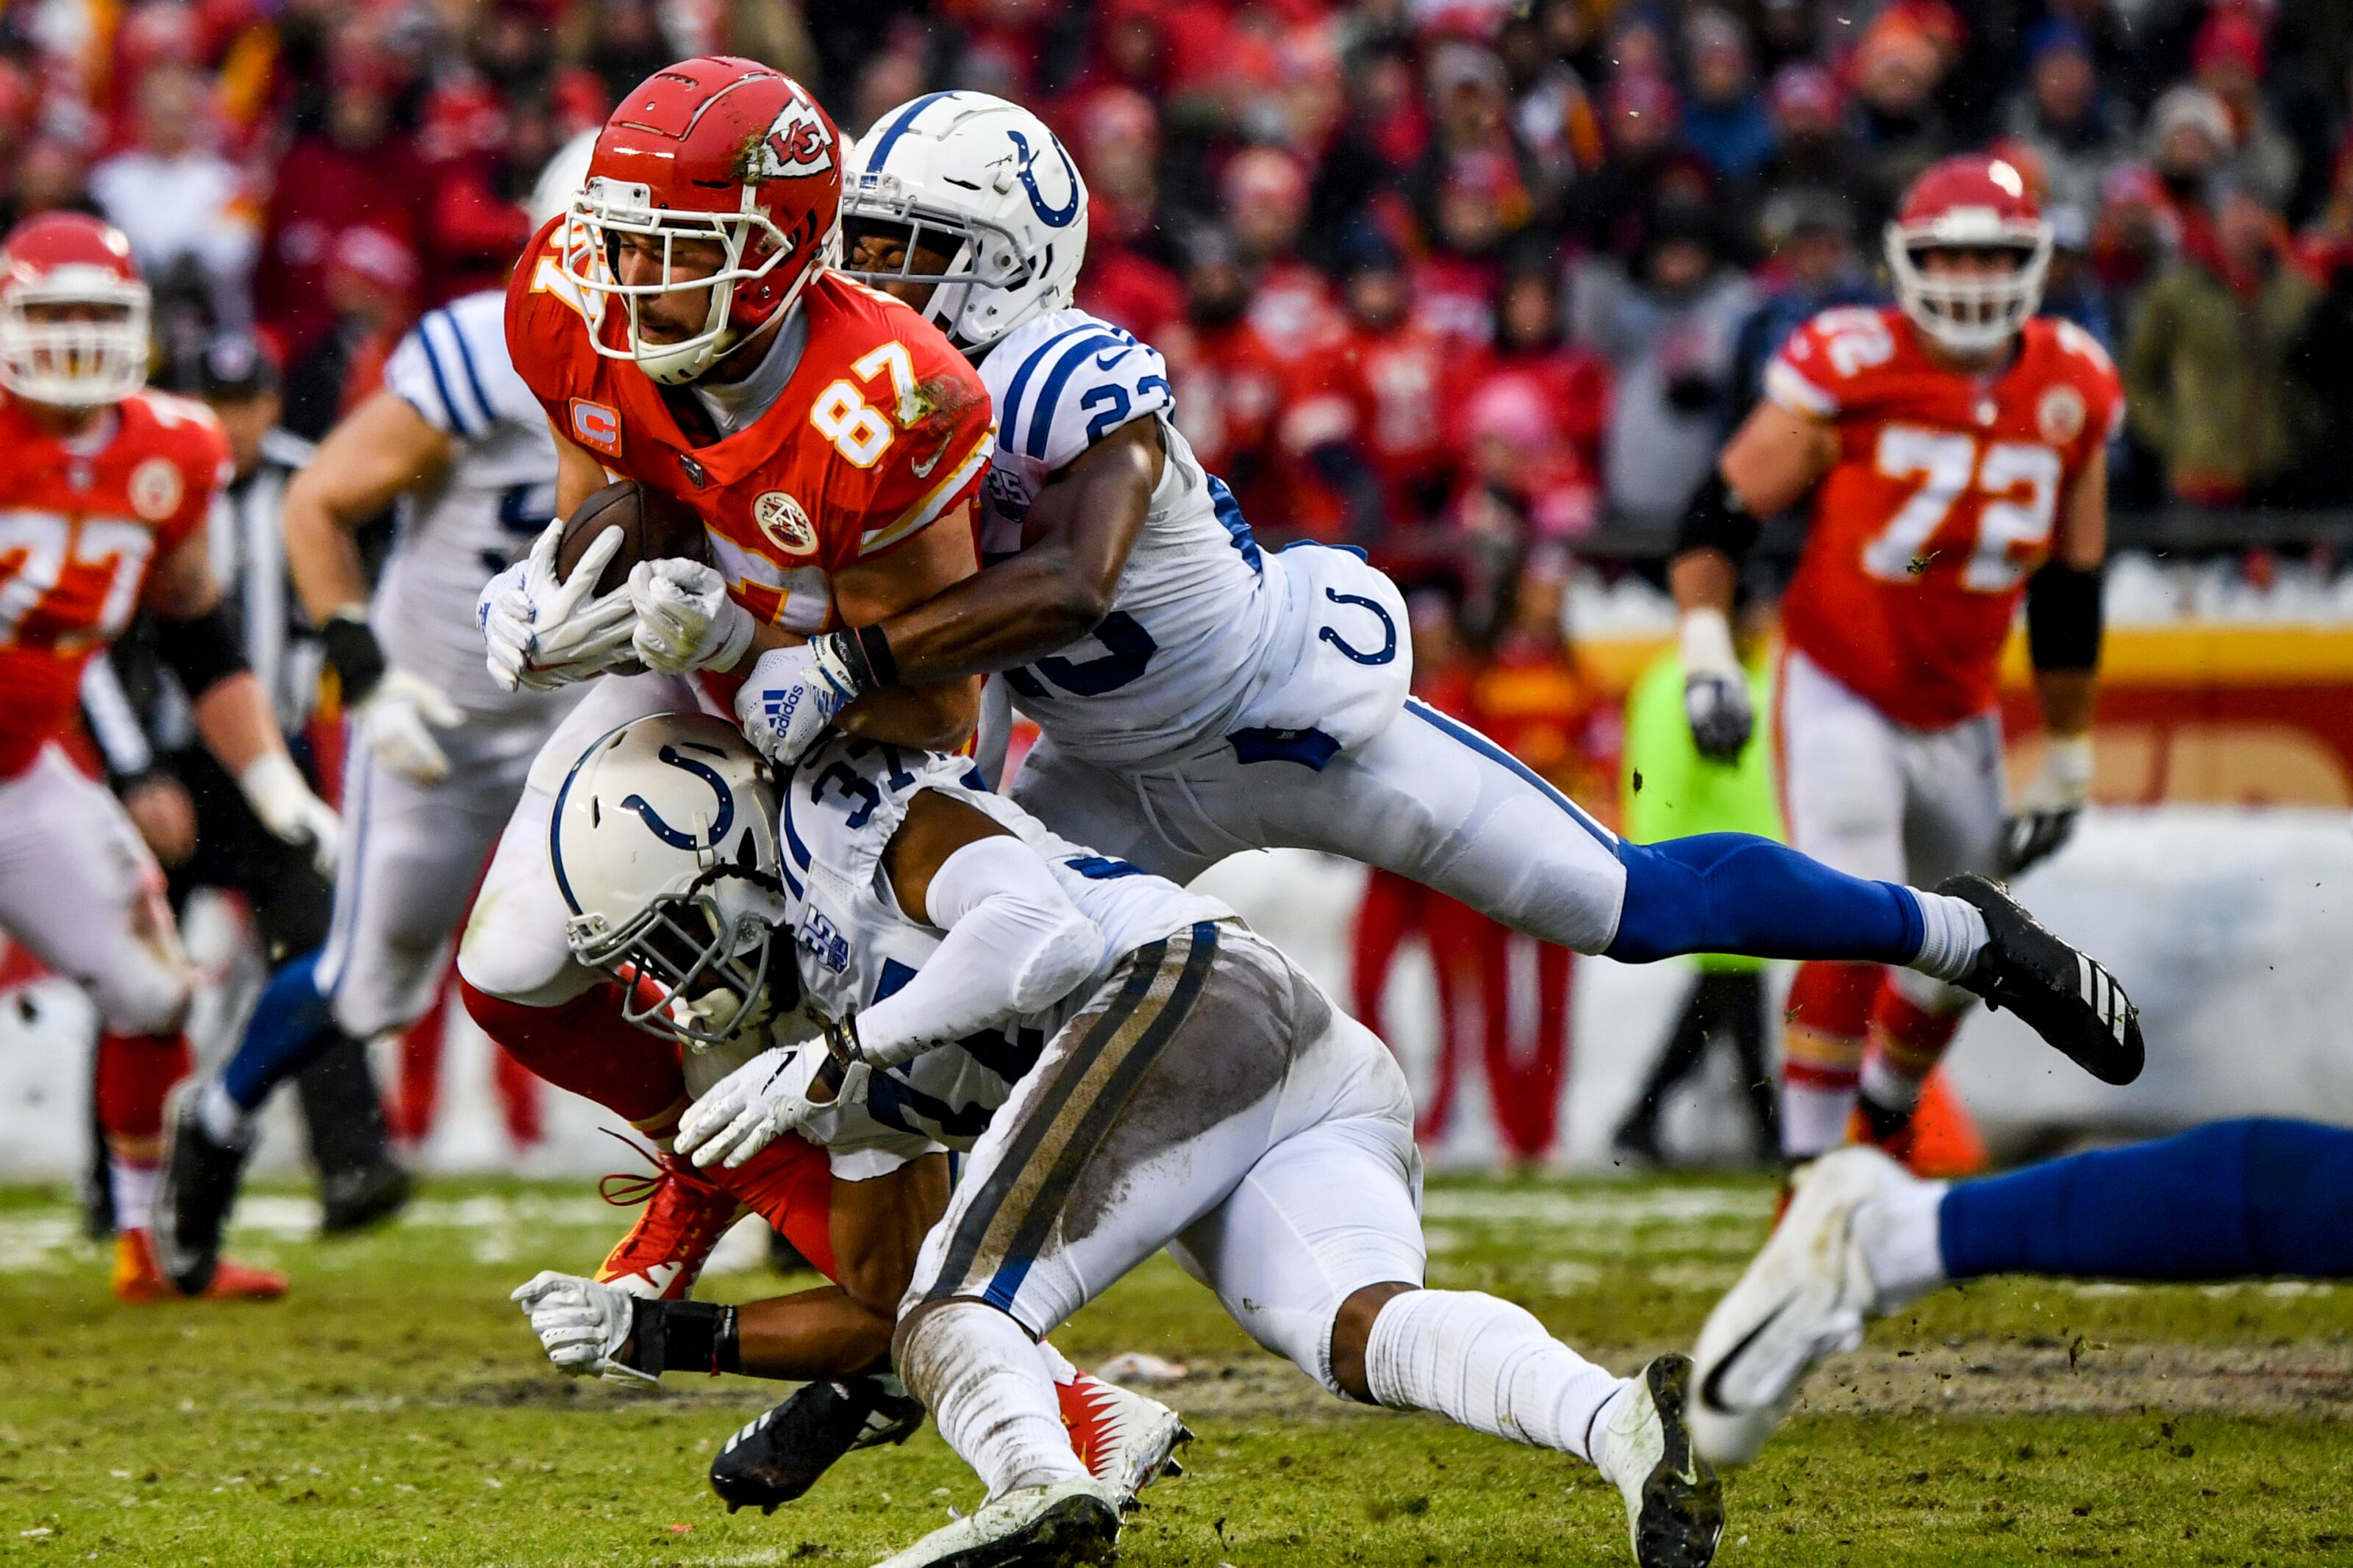 Colts still need a little more to take down big dogs